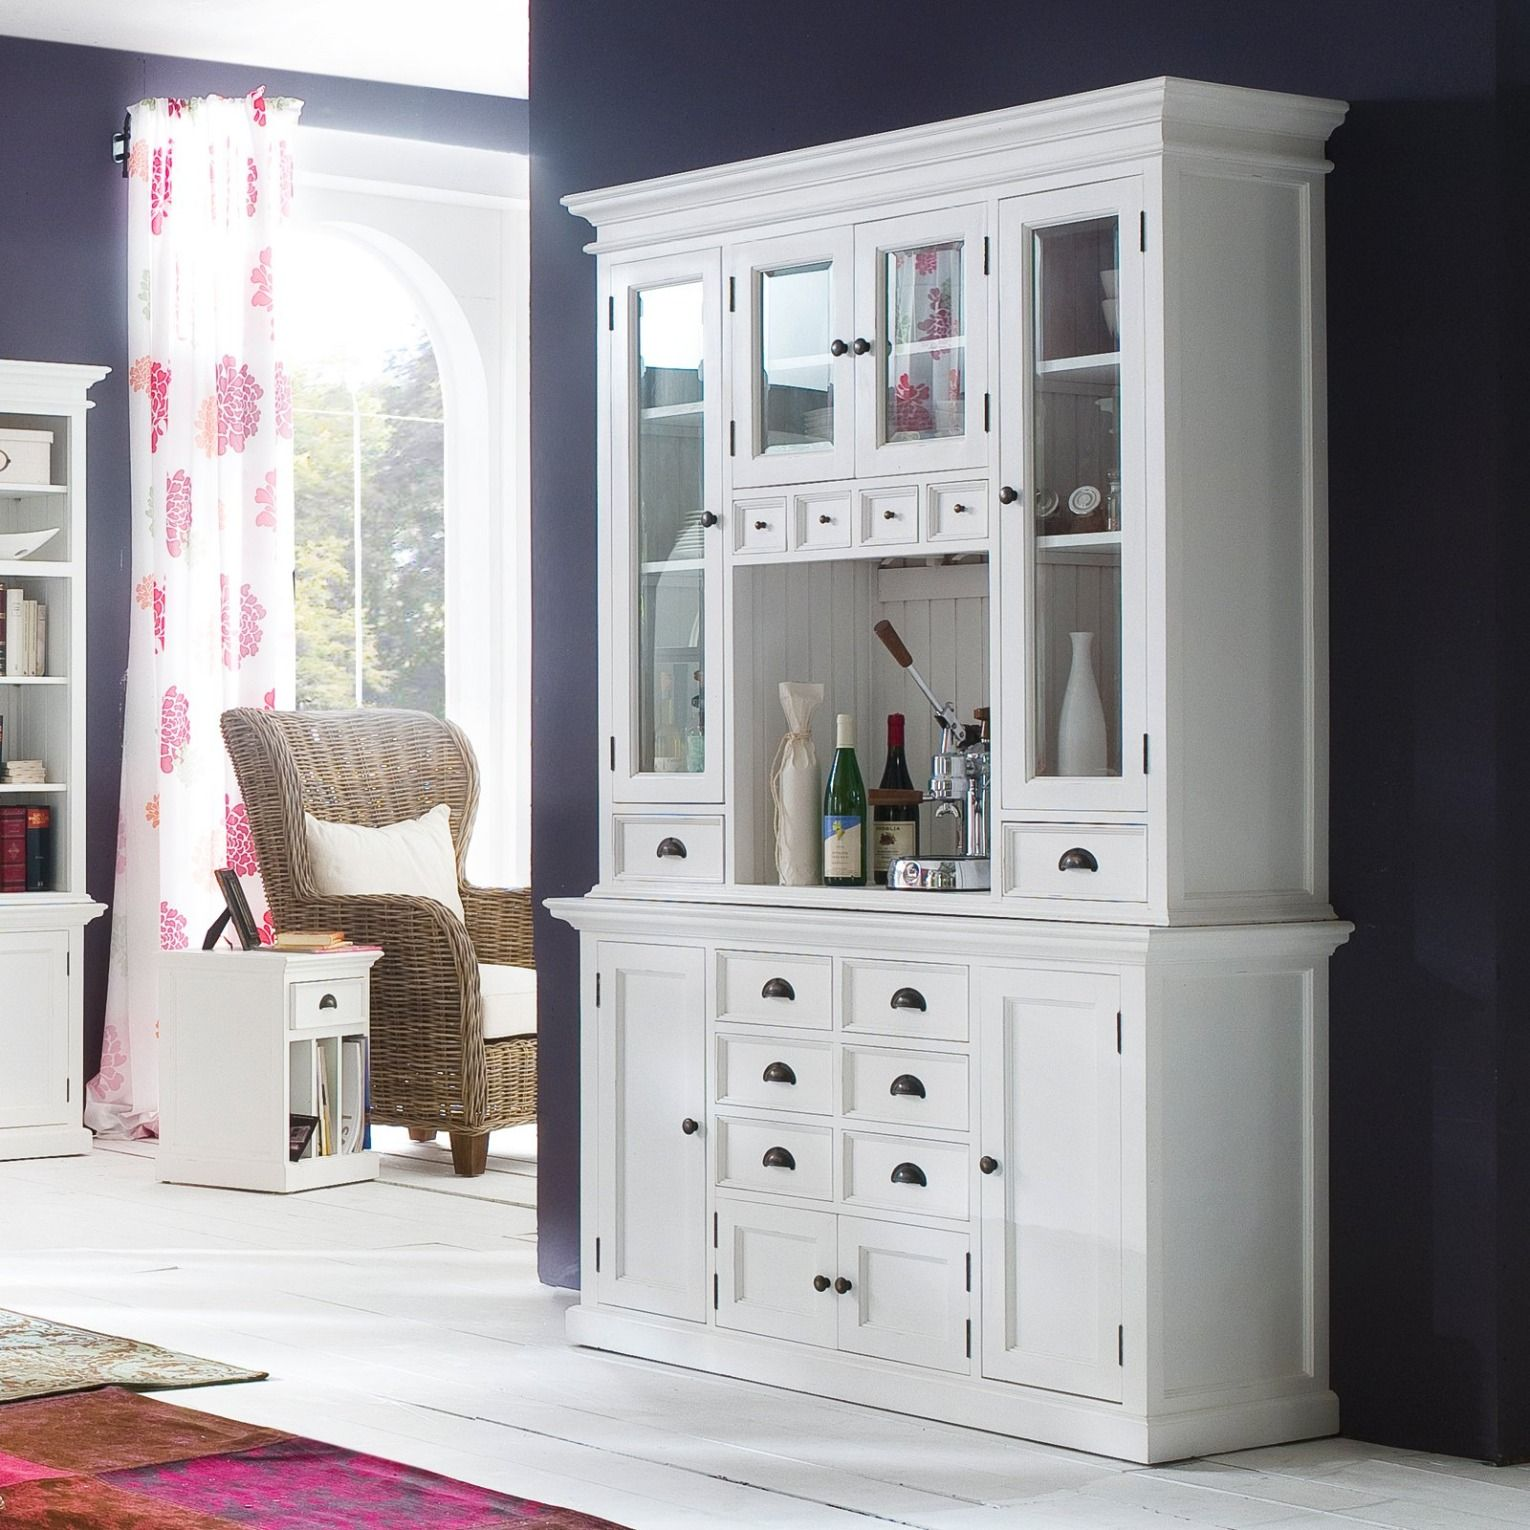 Contemporary china cabinet contemporary decor u china cabinets